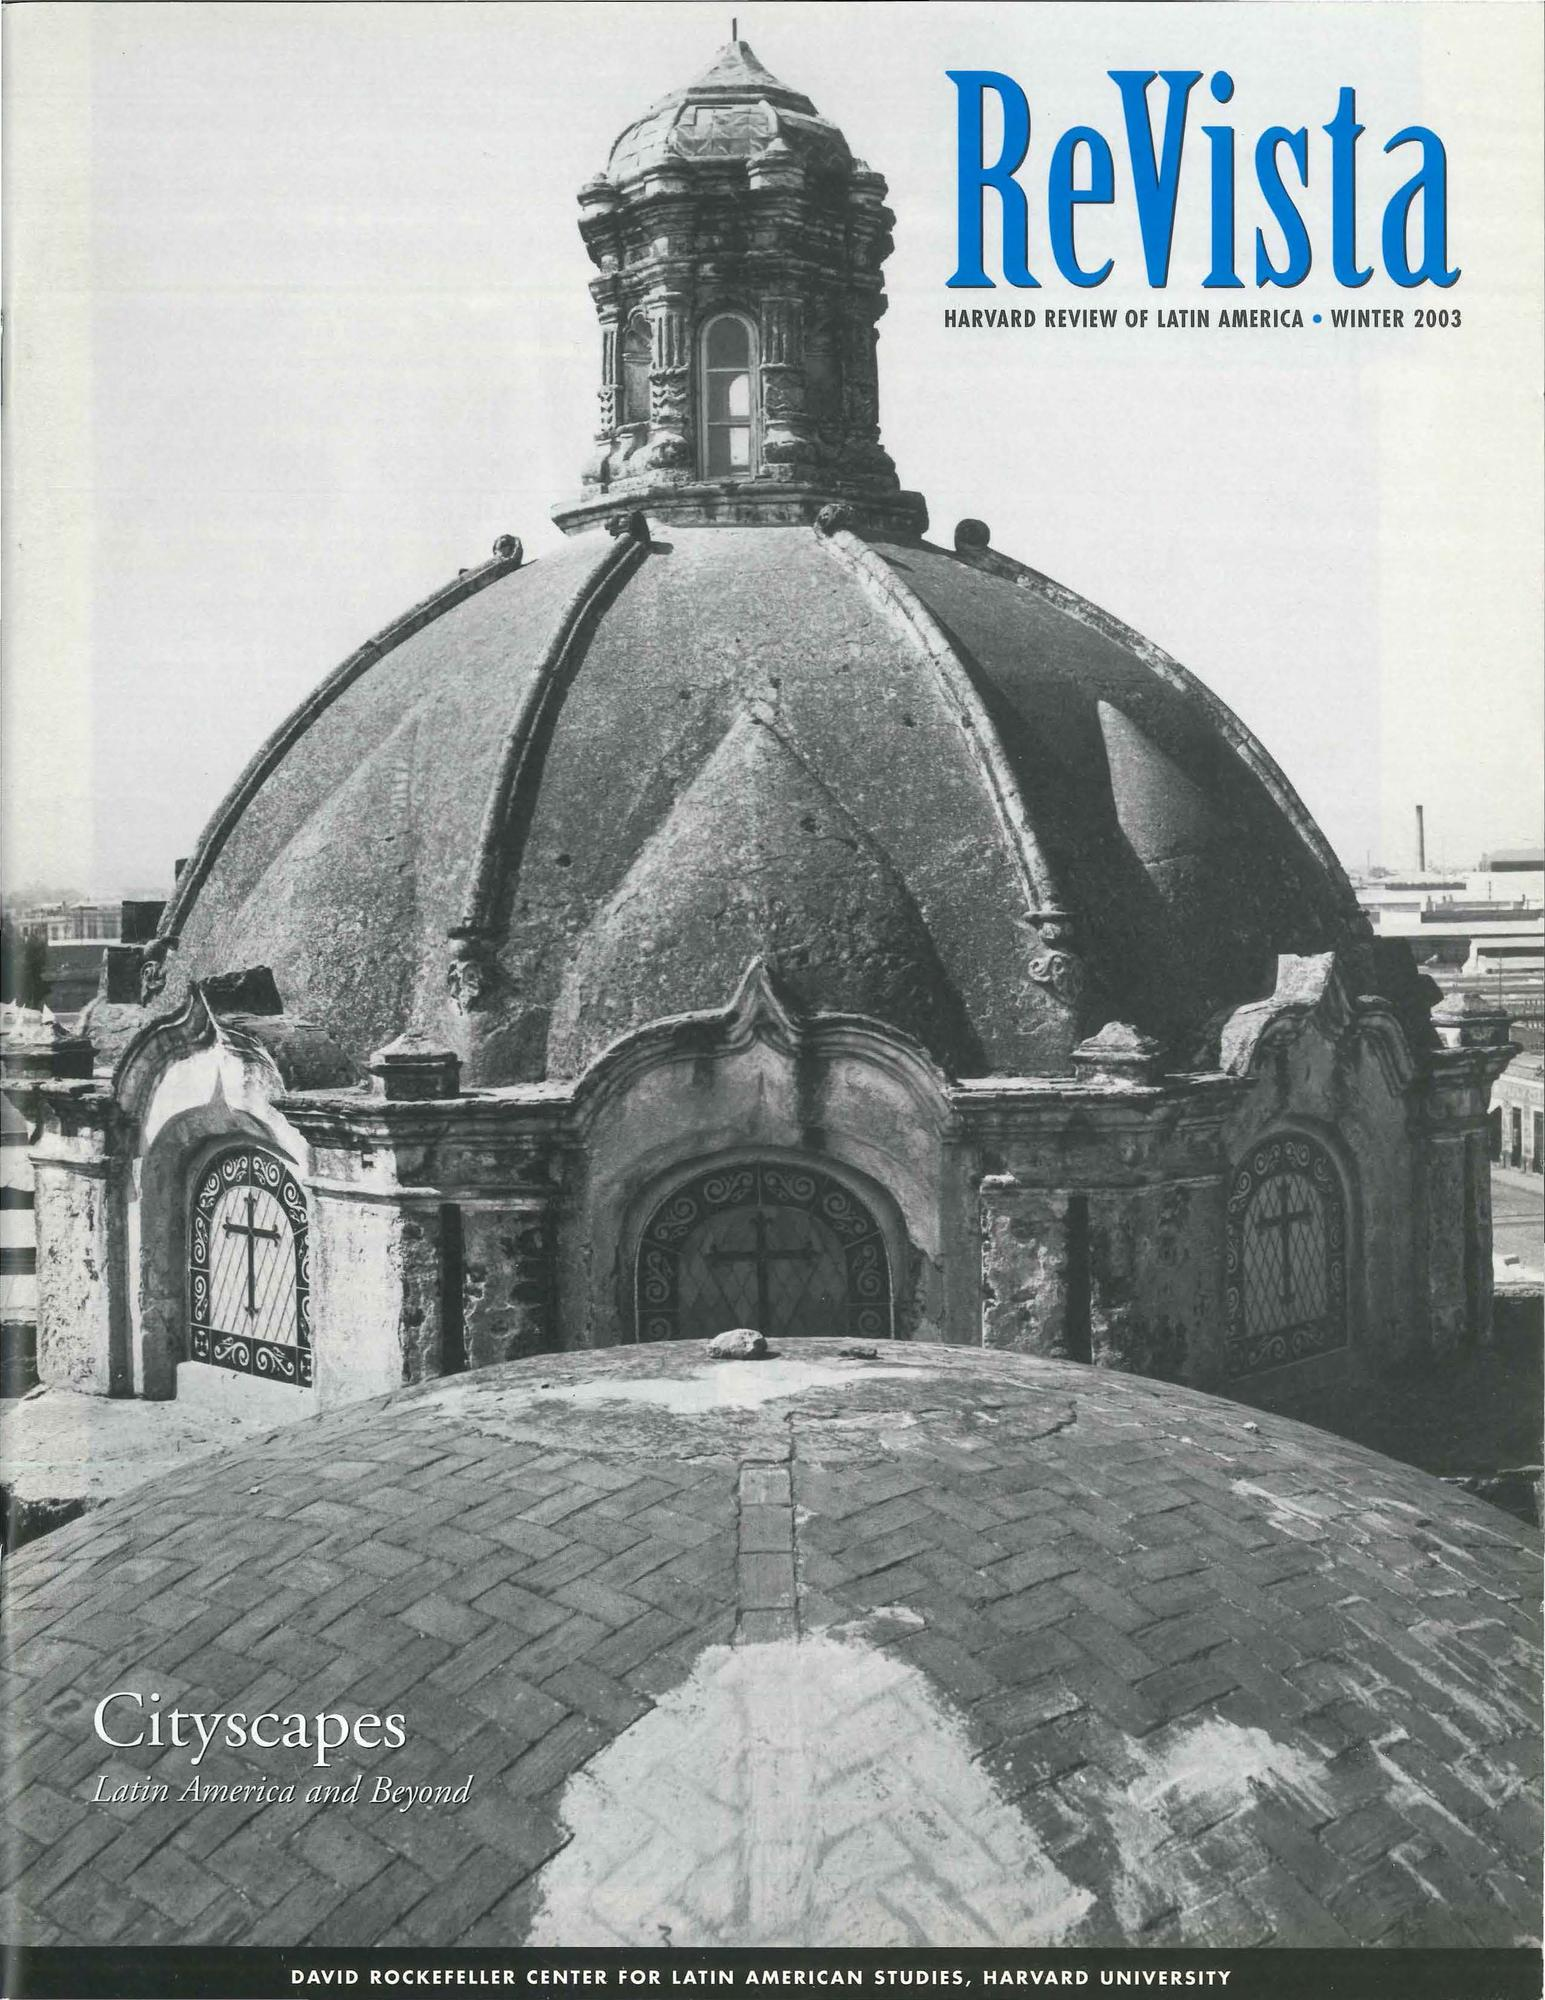 d46521acaa Cityscapes: Latin America and Beyond (Winter 2003)